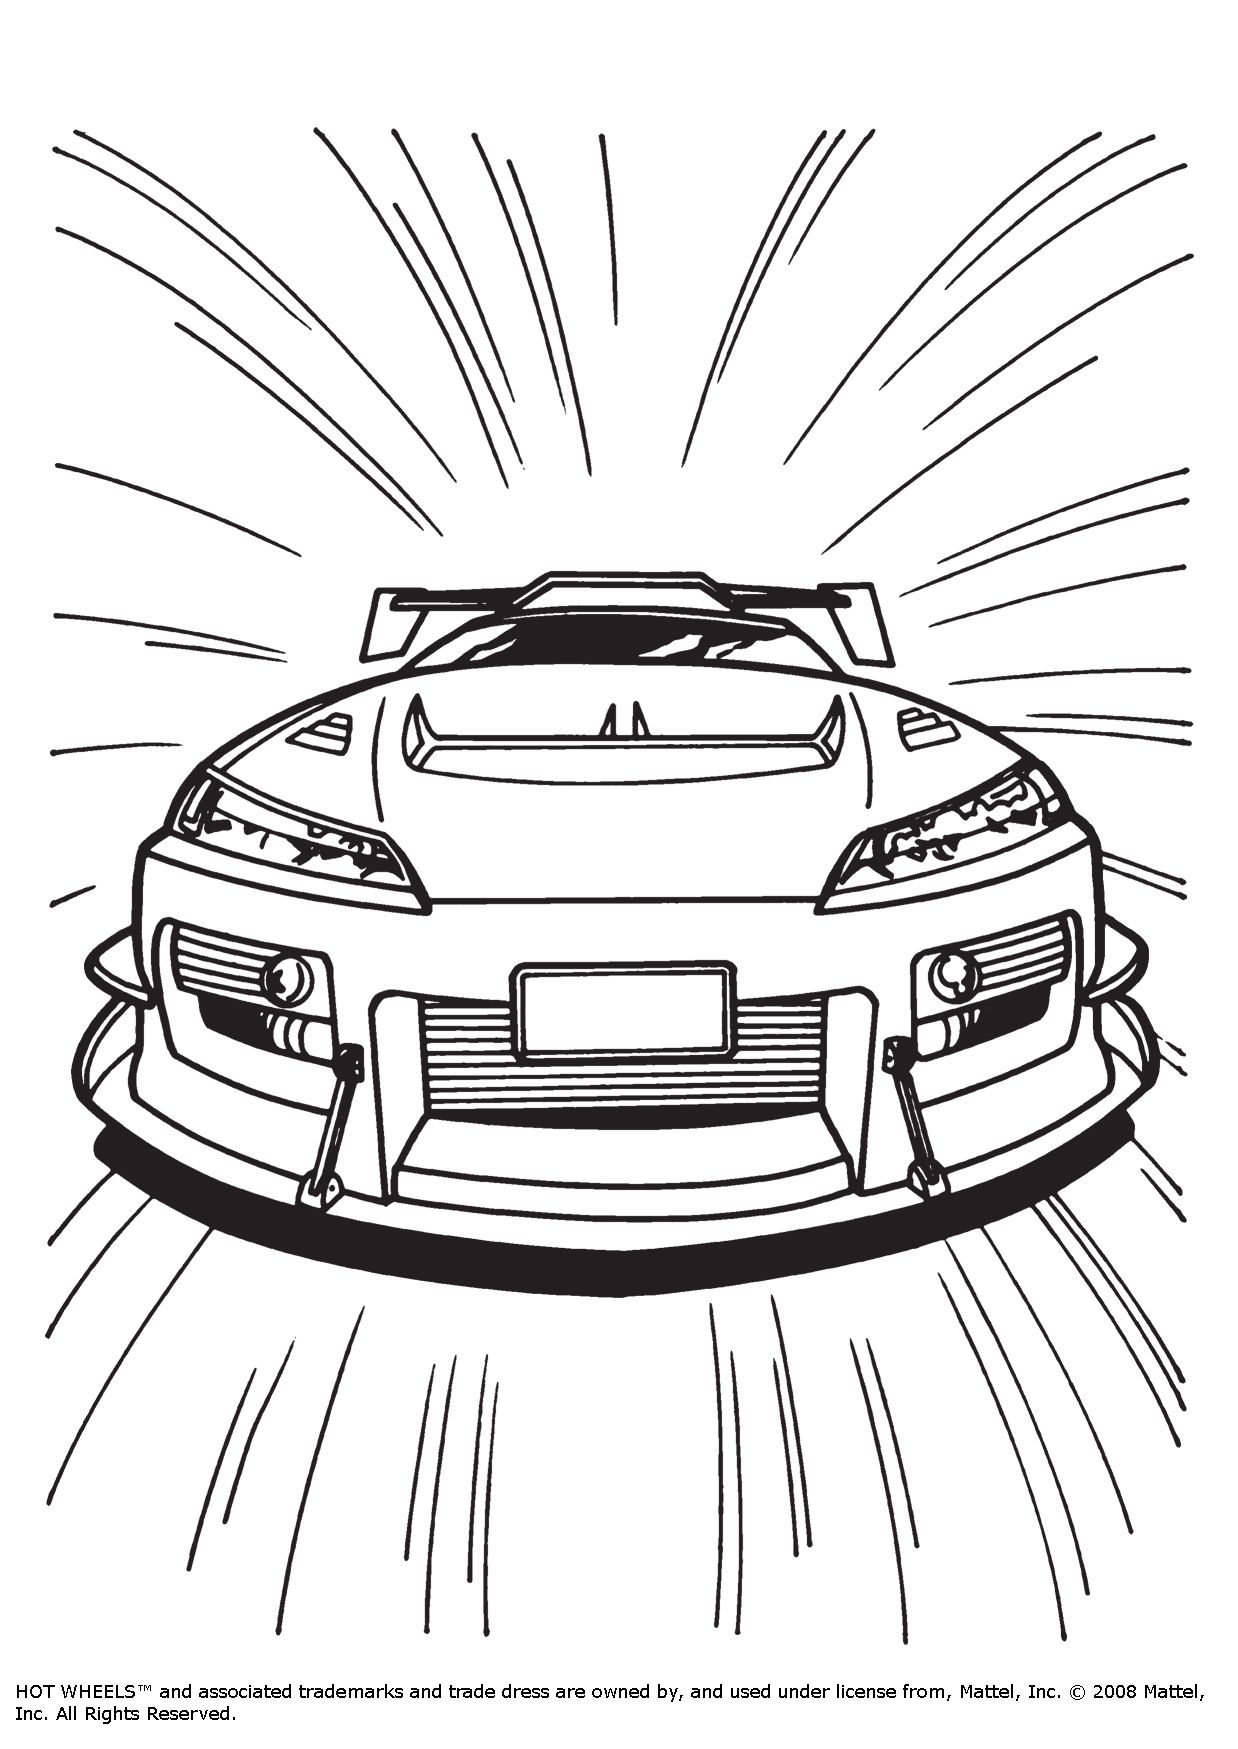 Coloring pages for hot wheels - Cars 2 Printable Coloring Pages Cars 2 Coloring Pages Cars 2 Coloring